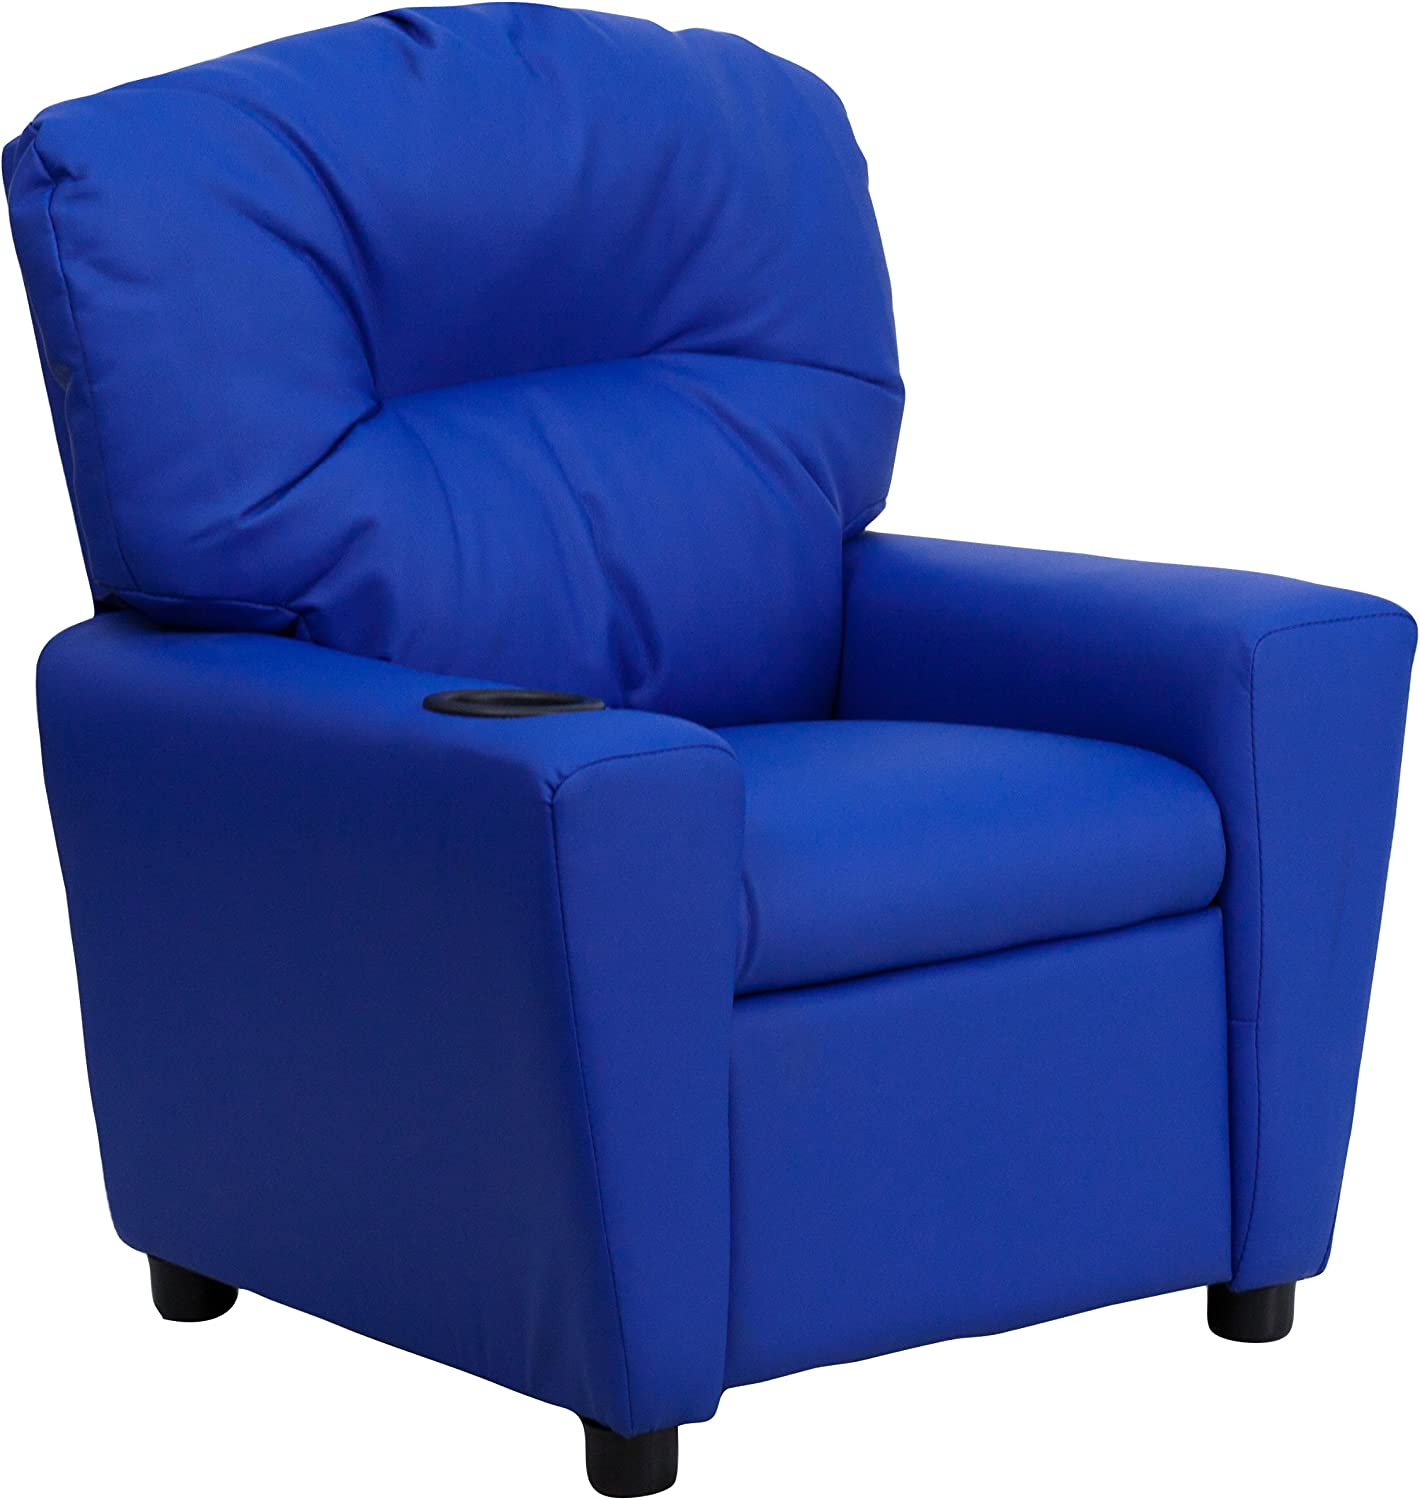 Flash Furniture BT-7950-KID-BLUE-GGContemporary Blue Vinyl Kids Recliner with Cup Holder